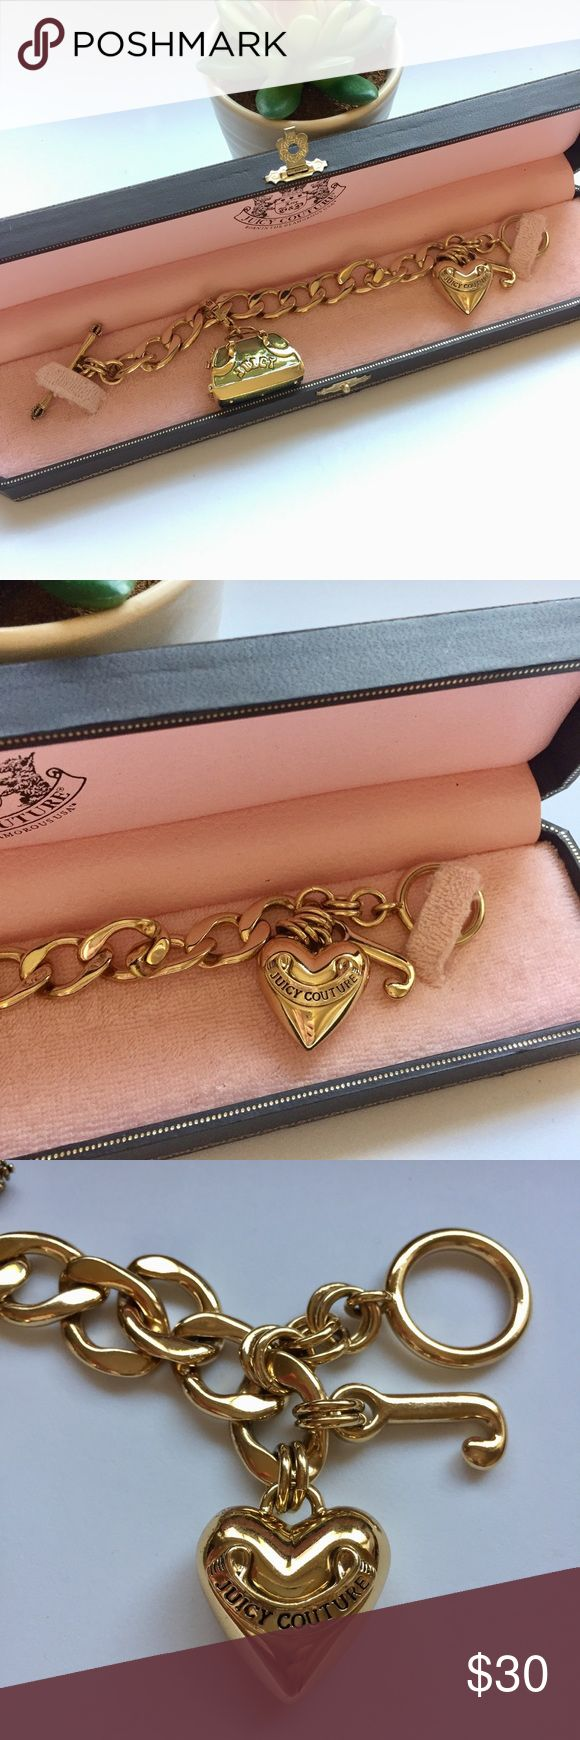 "Juicy Couture • Starter Charm Bracelet Brand new authentic Juicy Couture starter charm bracelet, the signature core of the Juicy Couture jewelry line comes complete with a heart charm at the end. Length: 7.5"". Toggle closure. 14k plate on solid brass. Includes a Juicy long gift box with velvet cushion. Bag charm is listed for sale in my closet. Juicy Couture Jewelry Bracelets"